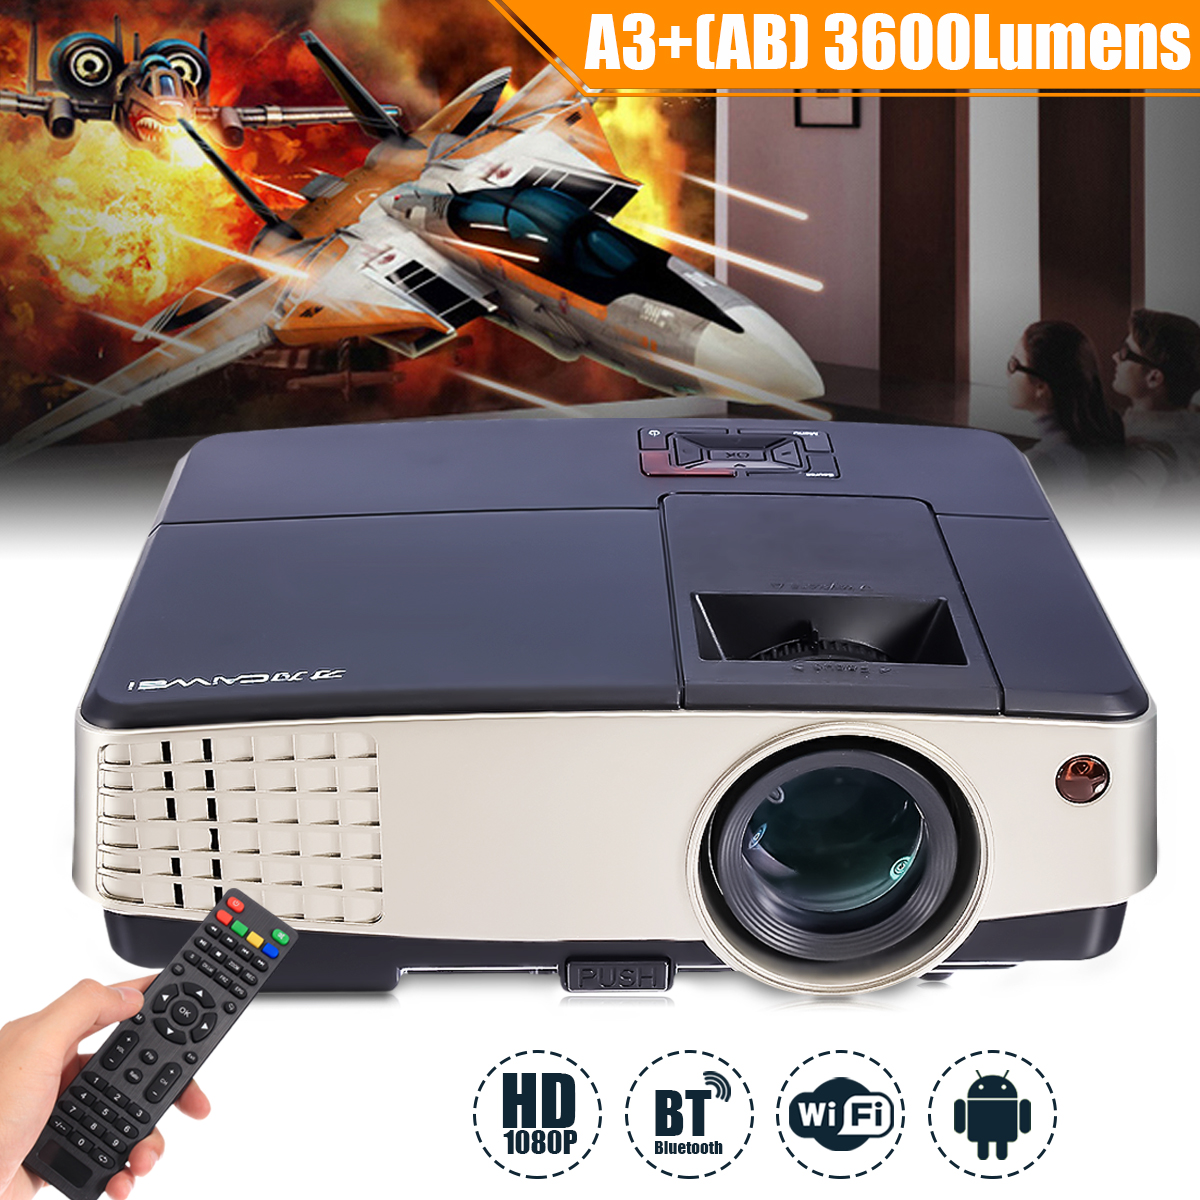 3600 Lumens A3+AB Projector 1080P Full HD LCD Wifi Home Theater Cinema 72W LED Android 4.4 Bluetooth Multimedia Beamer wzatco 5500lumen android smart wifi 1080p full hd led lcd 3d video dvbt tv projector portable multimedia home cinema beamer